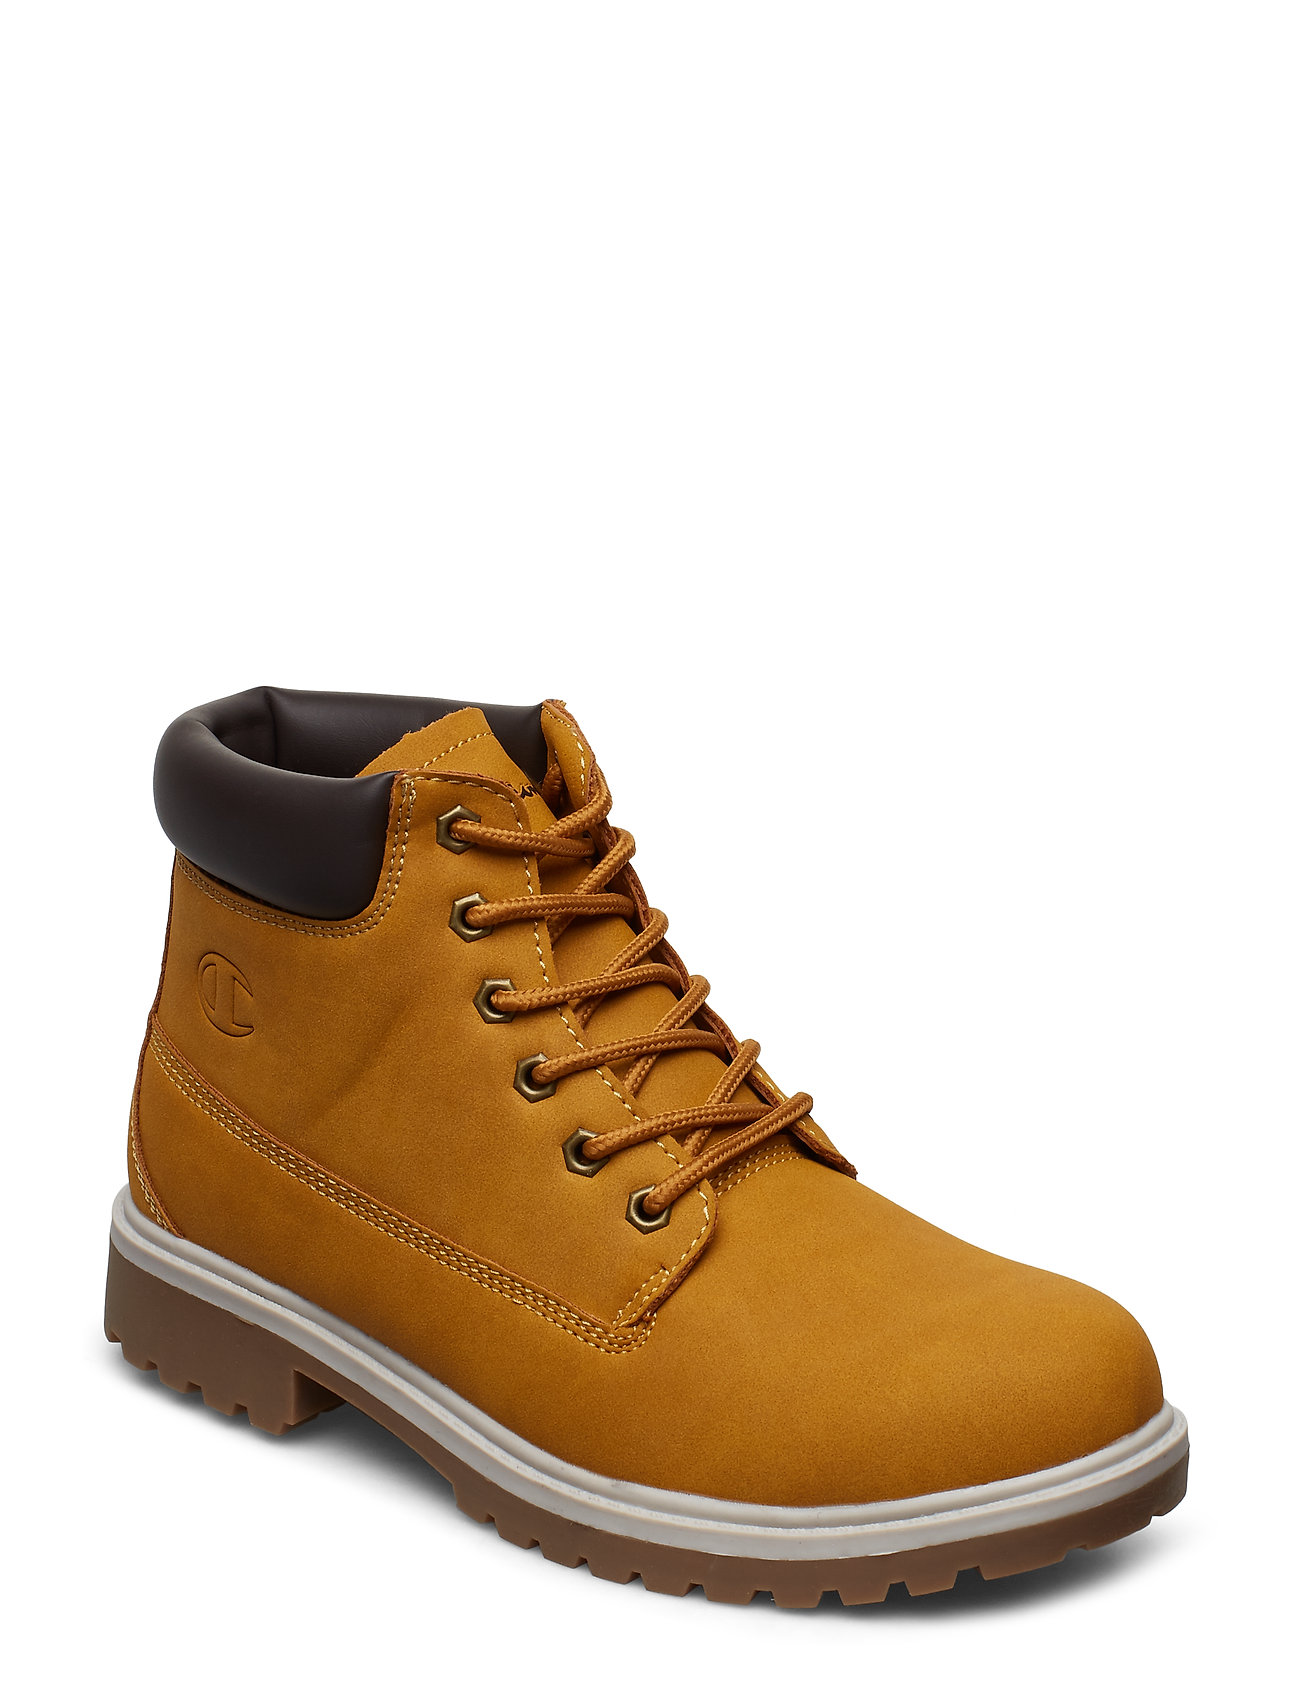 Image of Low Cut Shoe Upstate 3.0 Shoes Boots Ankle Boots Ankle Boots Flat Heel Gul Champion (3216262167)